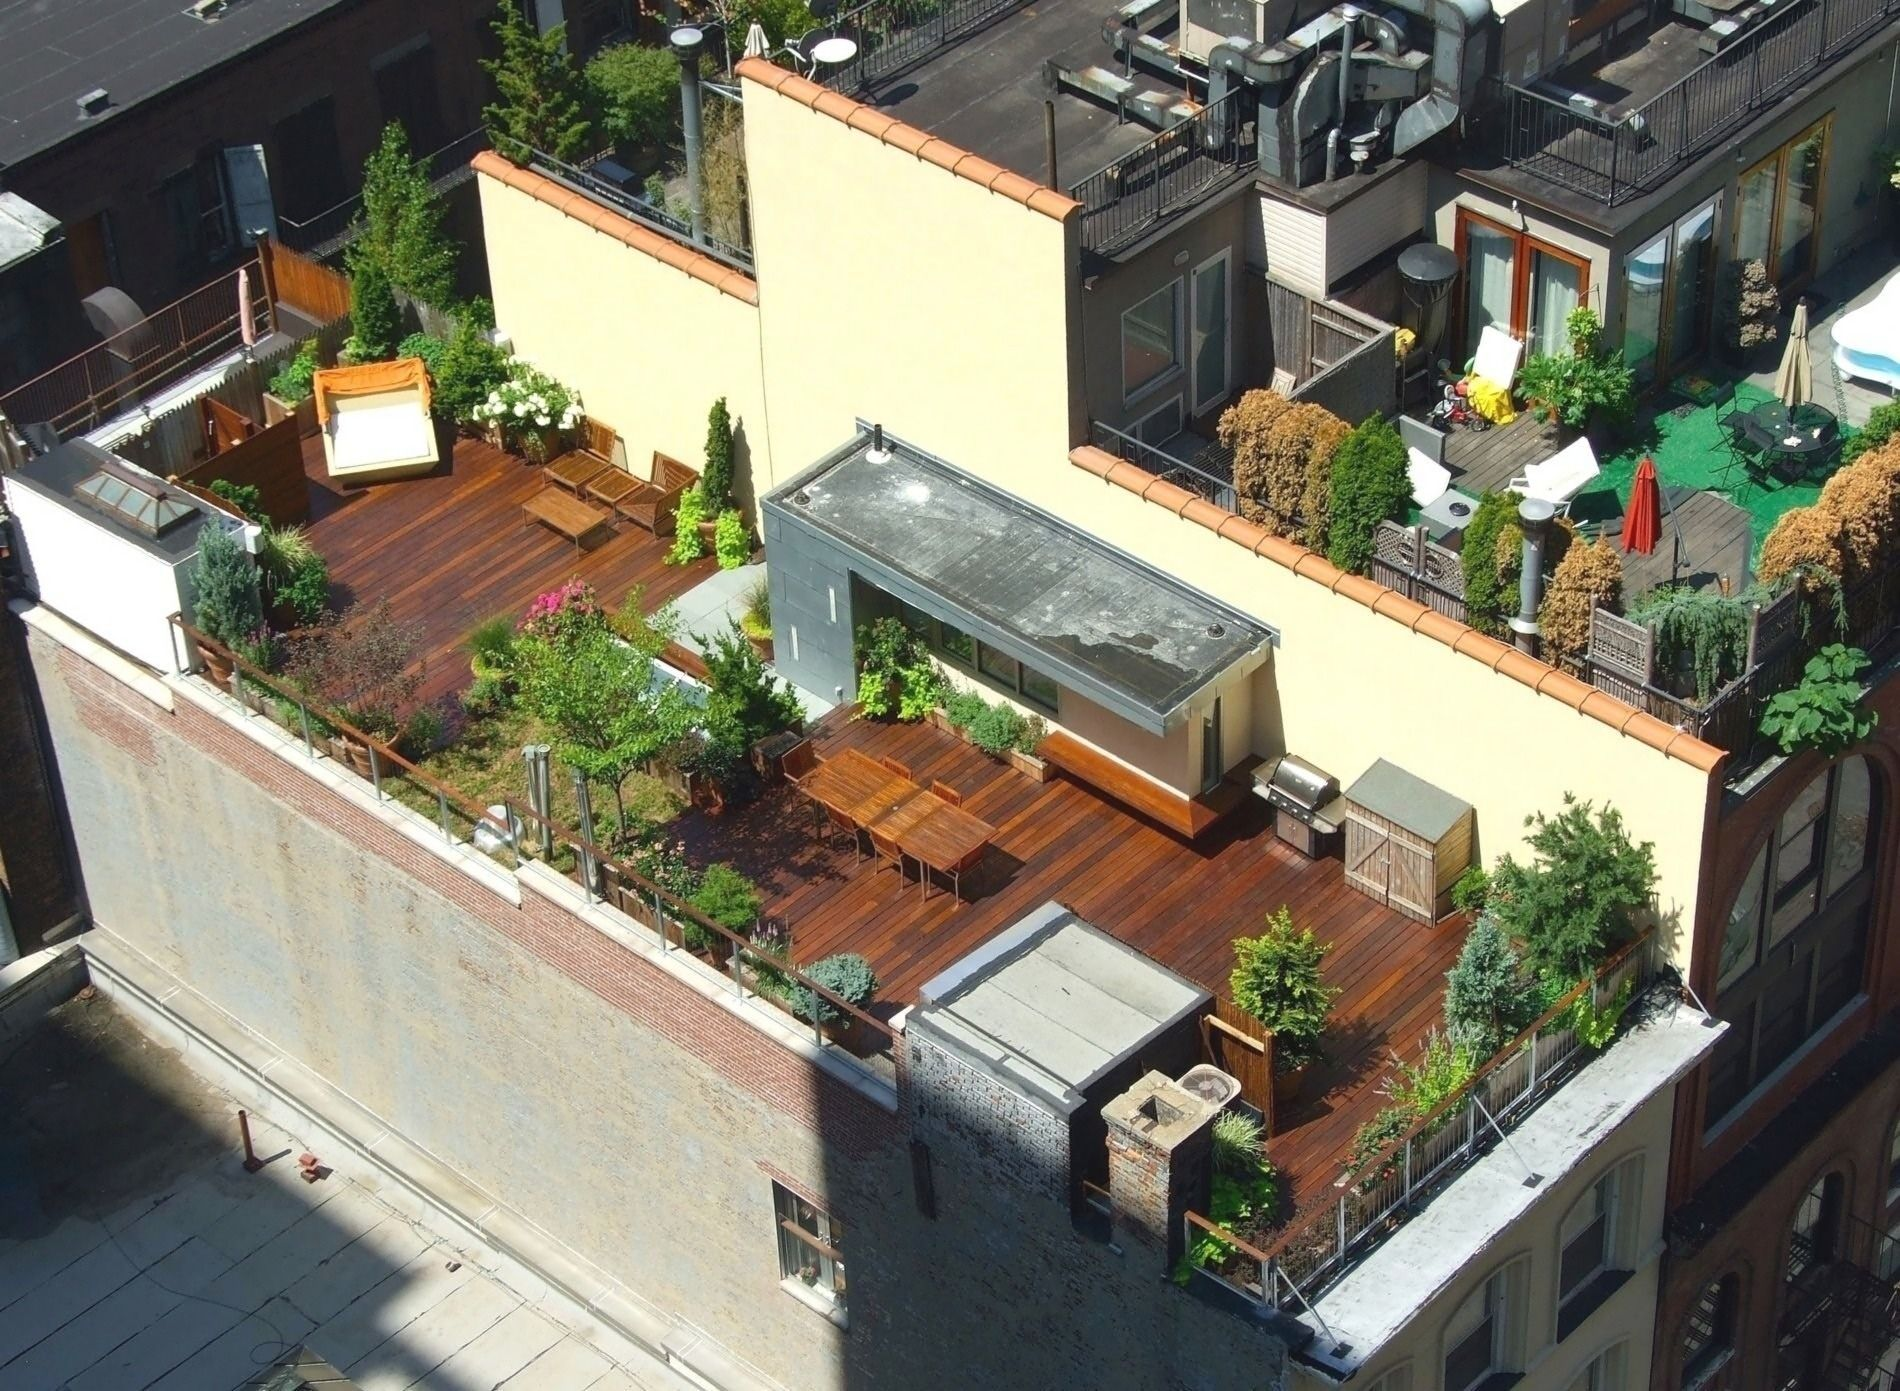 Small House Terrace Design Beautiful Aerial View Rooftop Deck Nyc 1900 1391 In 2020 Rooftop Patio Design Rooftop Terrace Design Rooftop Design